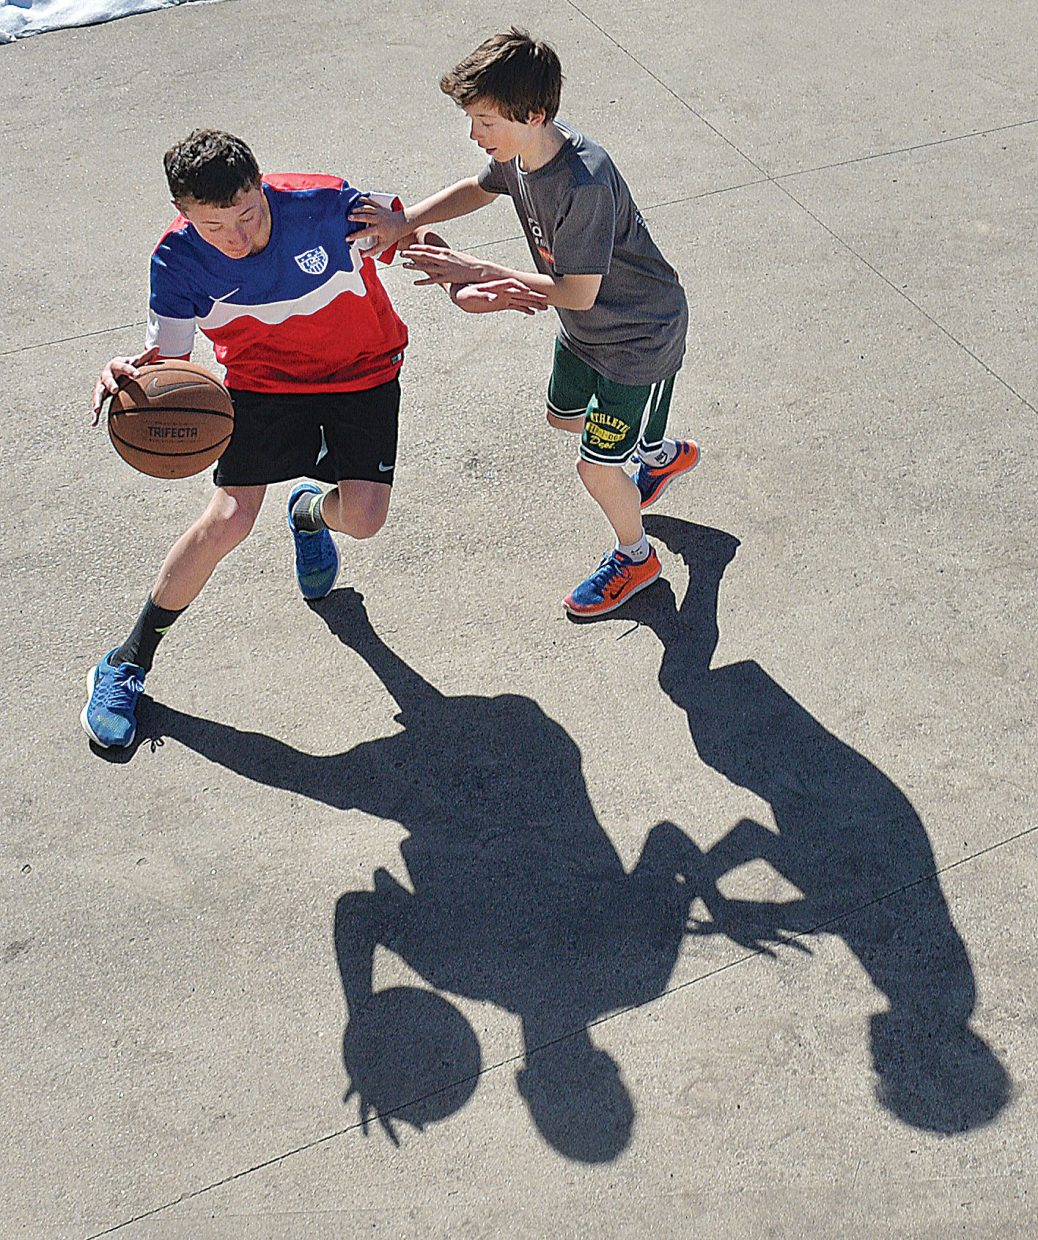 Cole Puckett attempts to get past his brother Cooper in a game of one-on-one basketball in the family's driveway Friday morning. There was no school Friday as teachers took part in a professional development day.